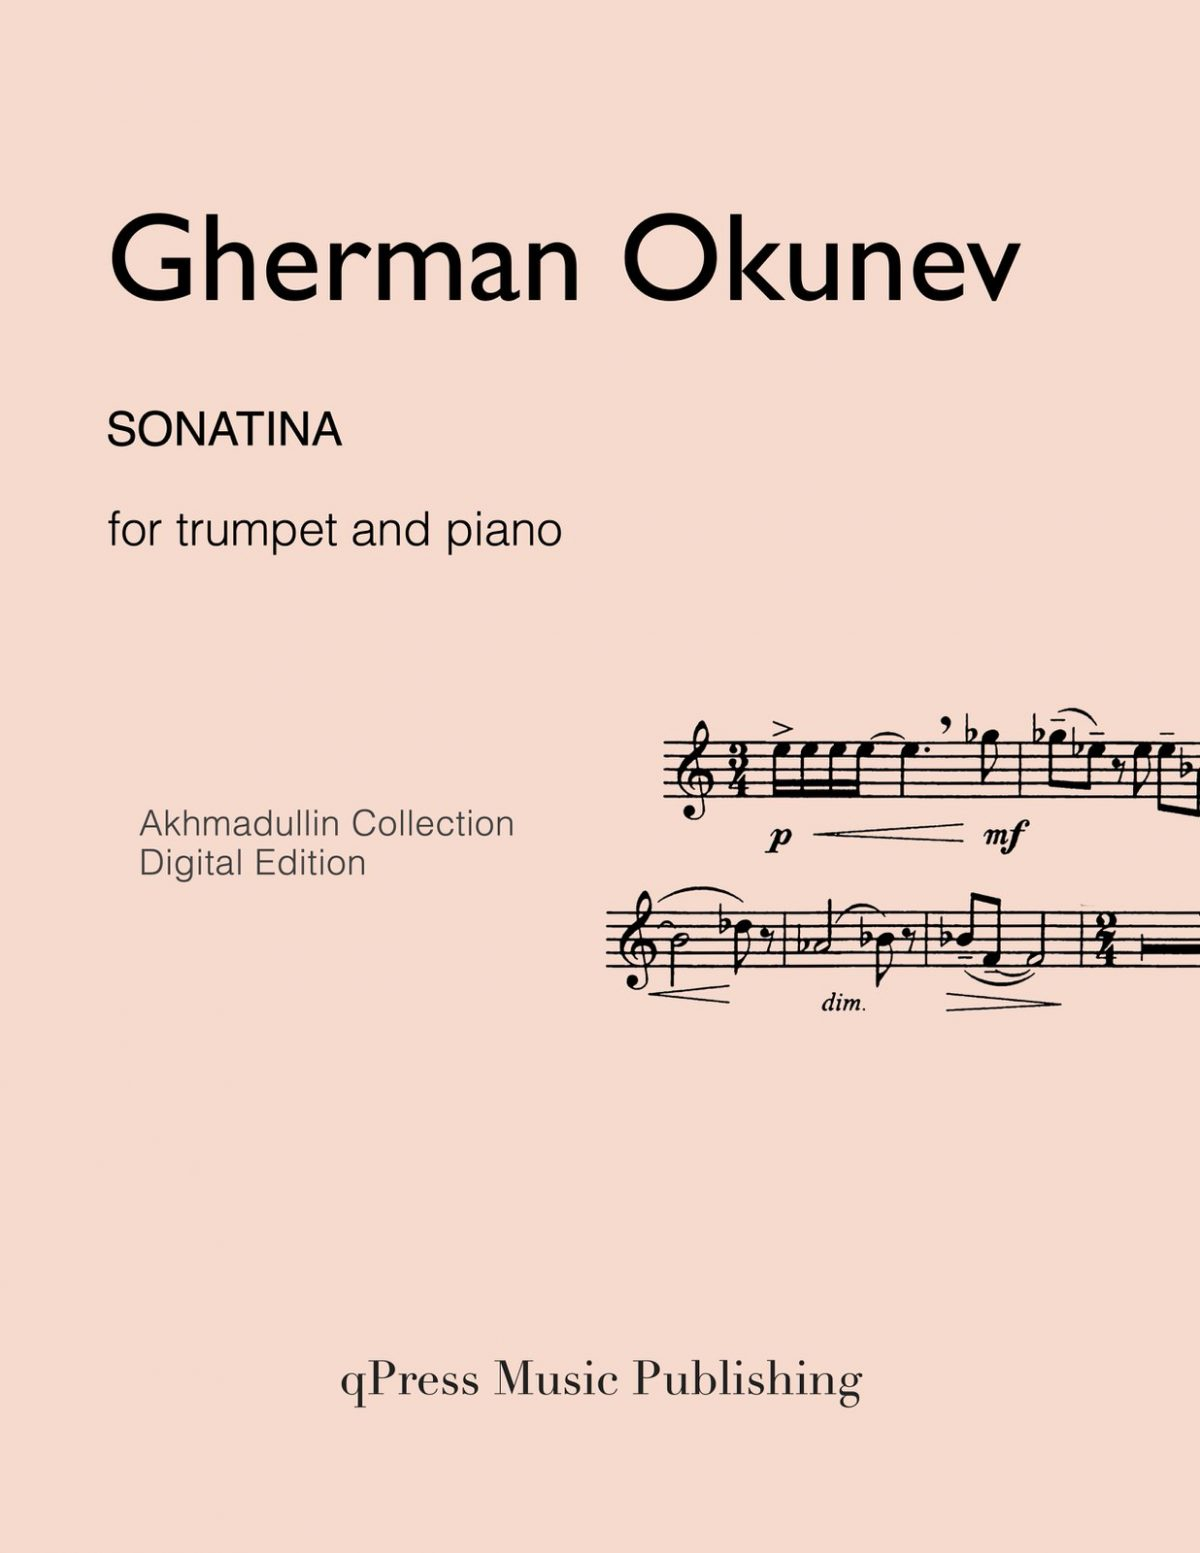 Okunev, Sonatina (Score and Part)-p01